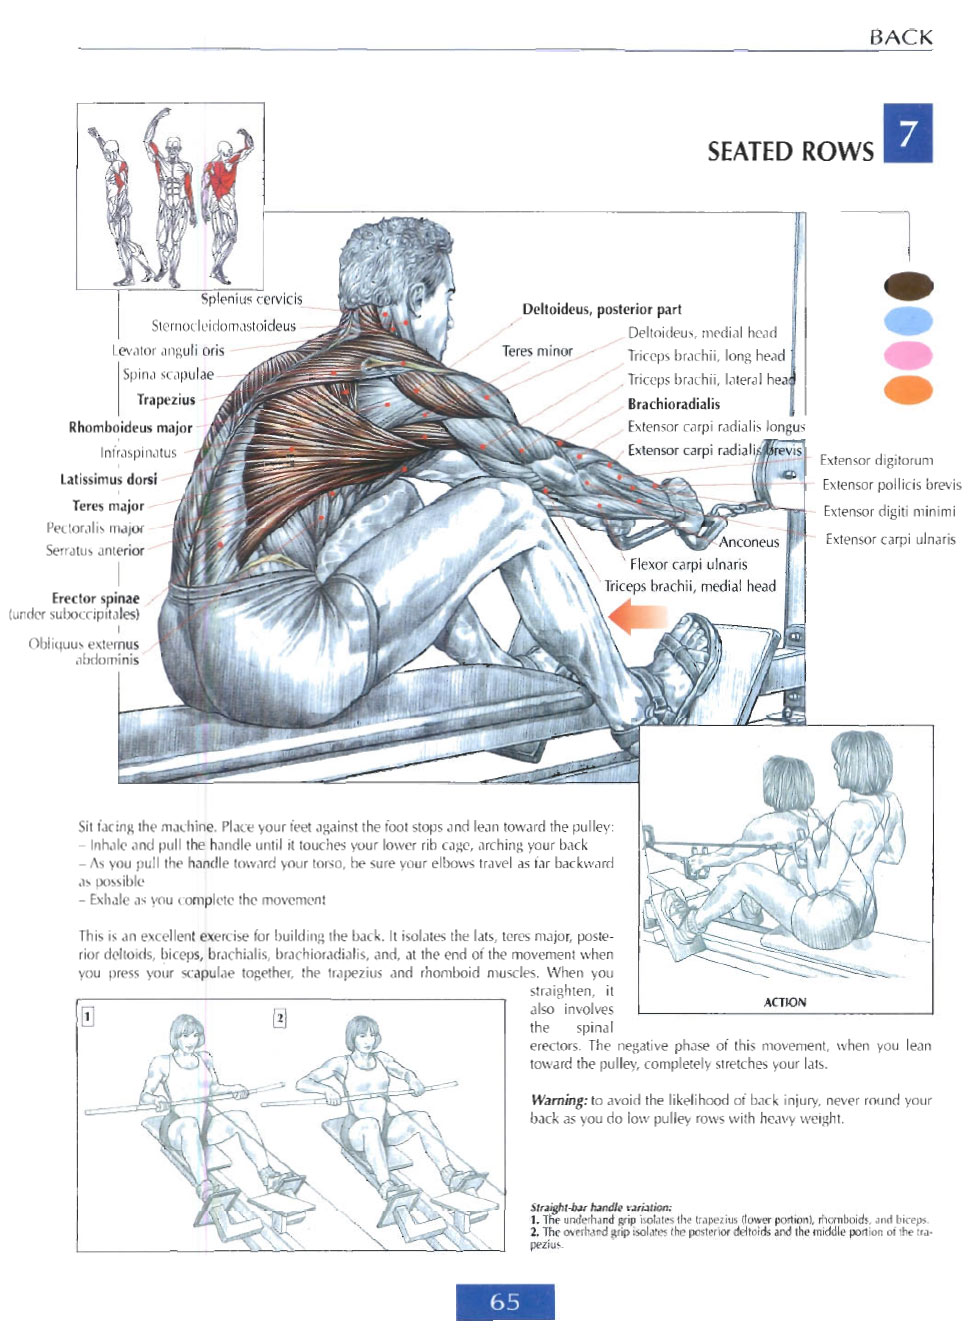 Seated Rows Anatomy